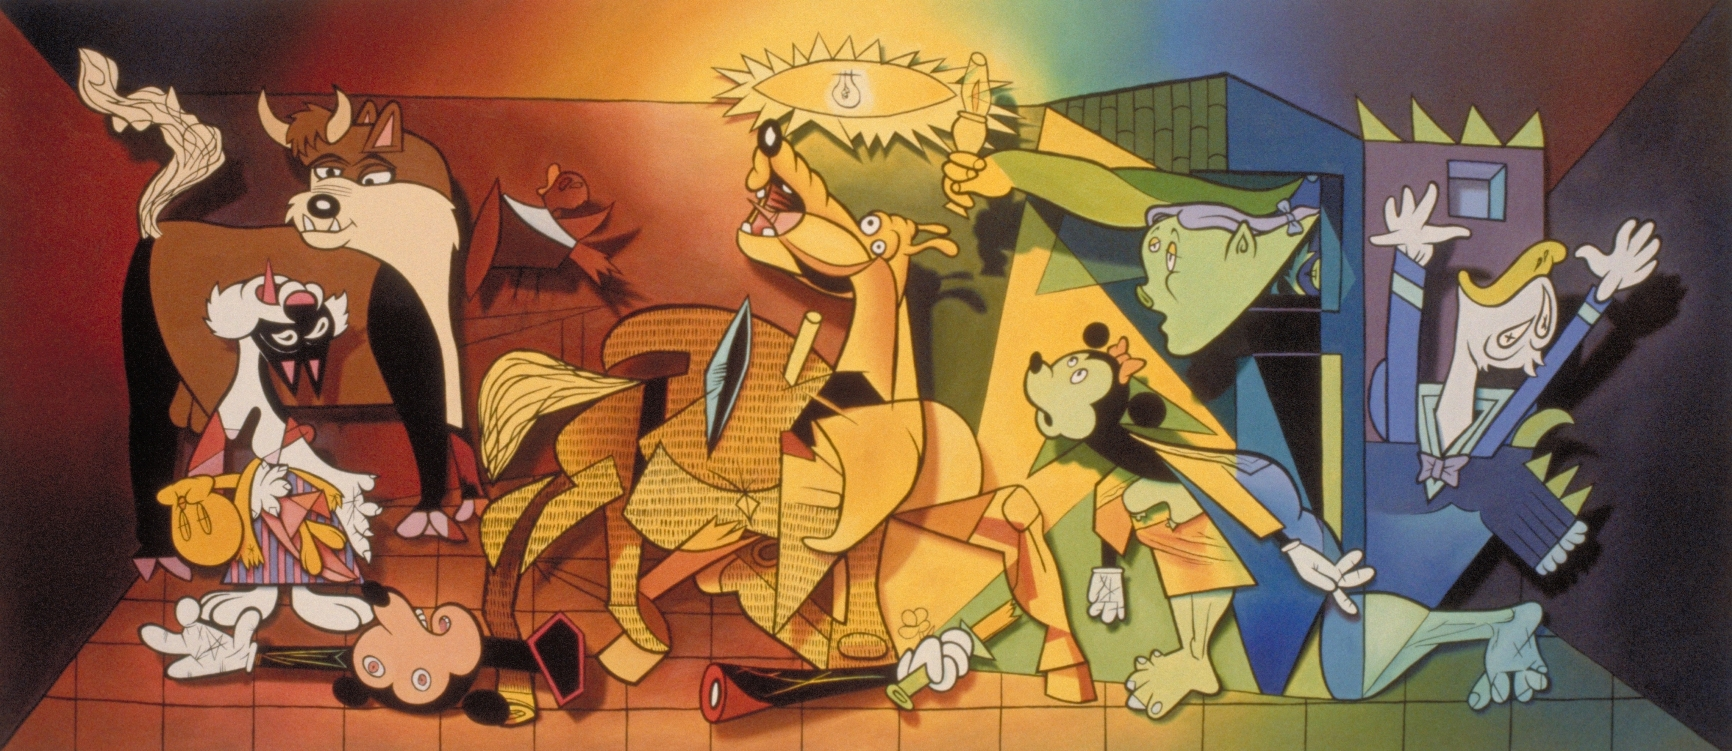 Guernica Painting Symbolism